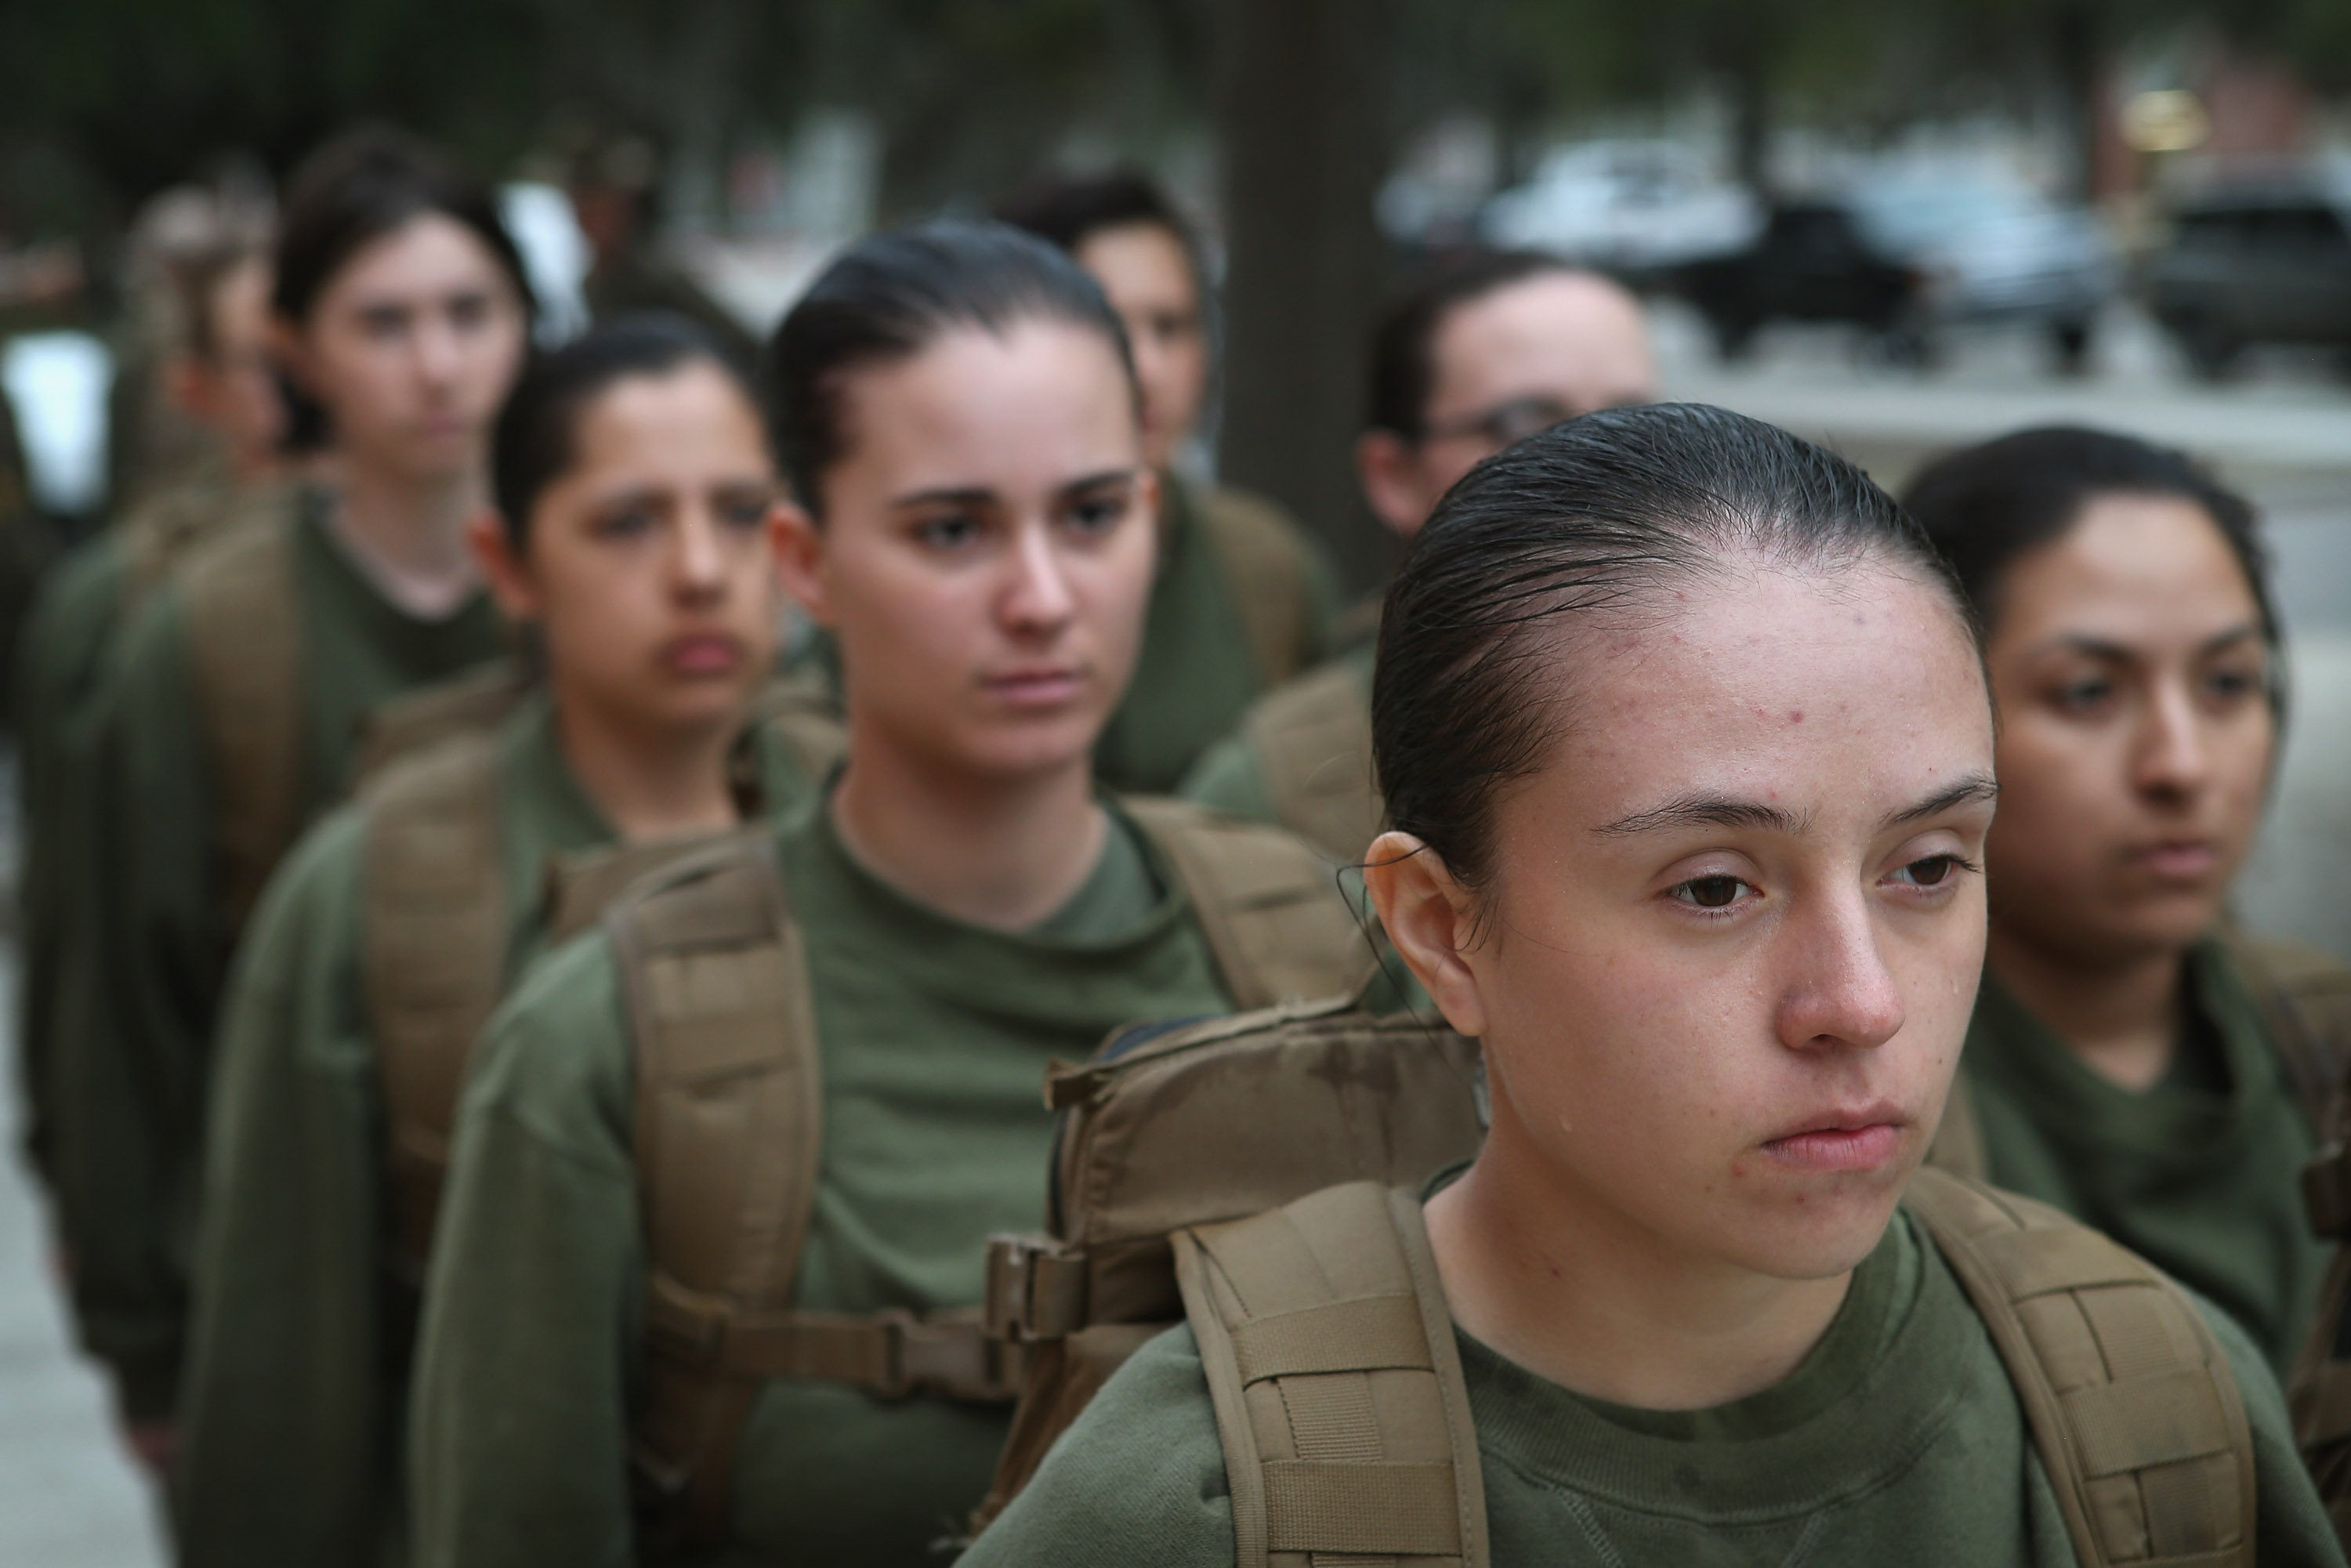 Female Marine recruits stand in formation during boot camp February 25, 2013 at MCRD Parris Island, South Carolina. (Photo by Scott Olson/Getty Images)